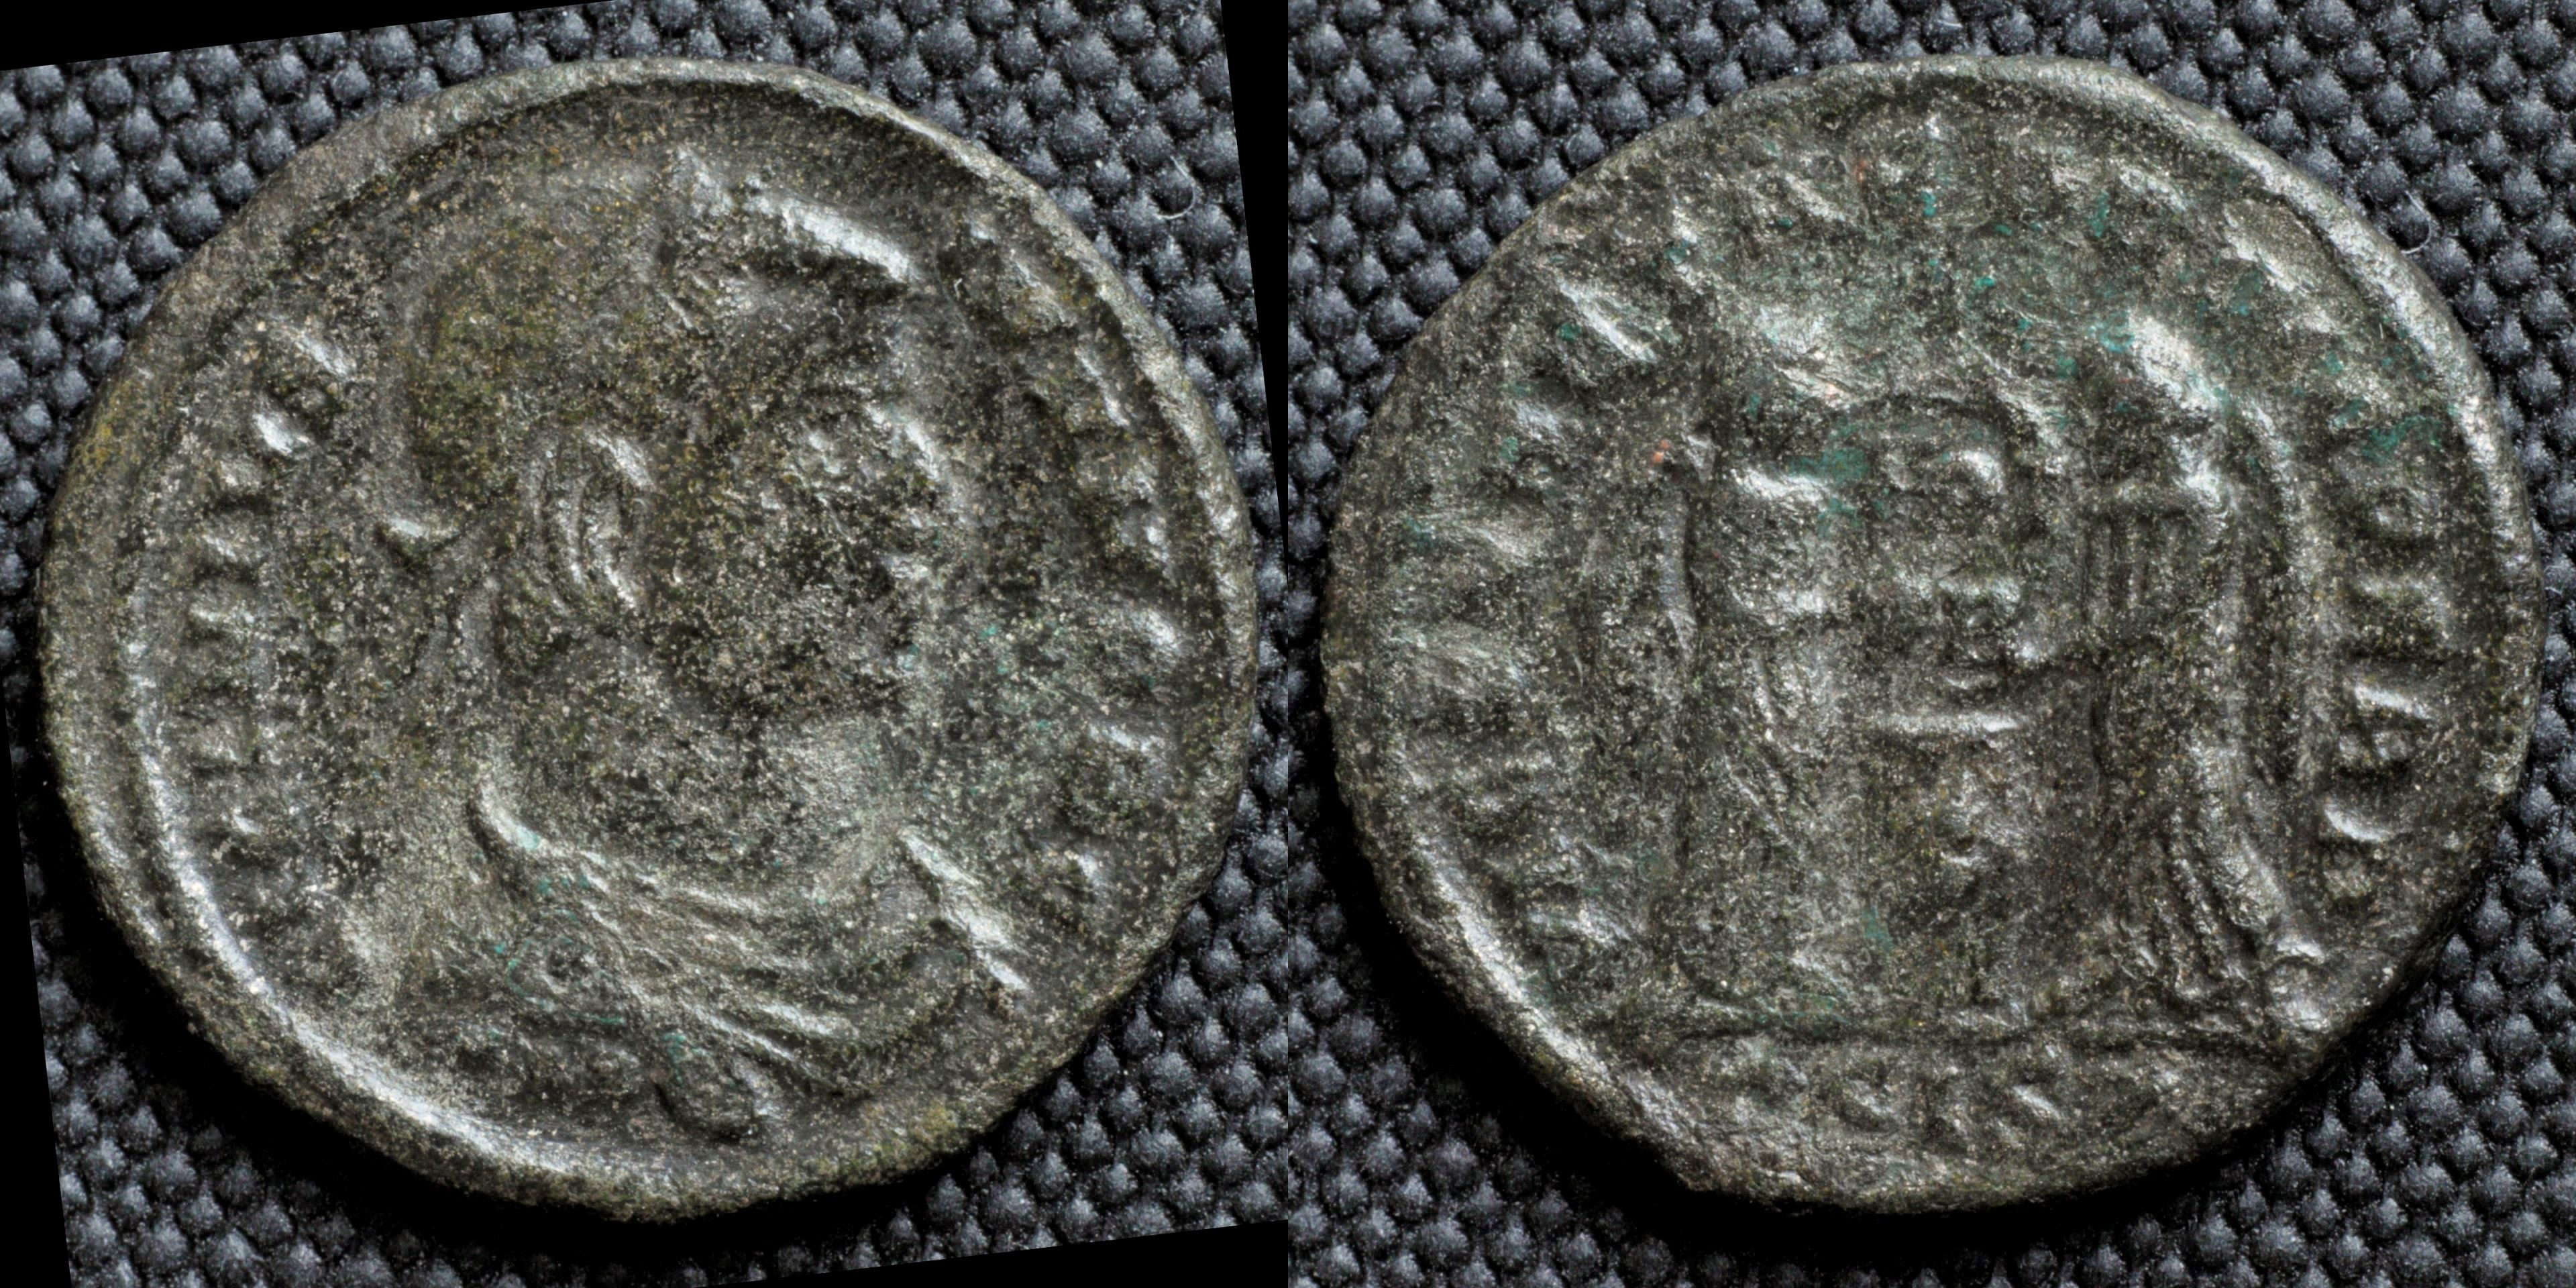 /Files/Images/Coinsite/CoinDB/154_Licinius_II_Siscia.jpg